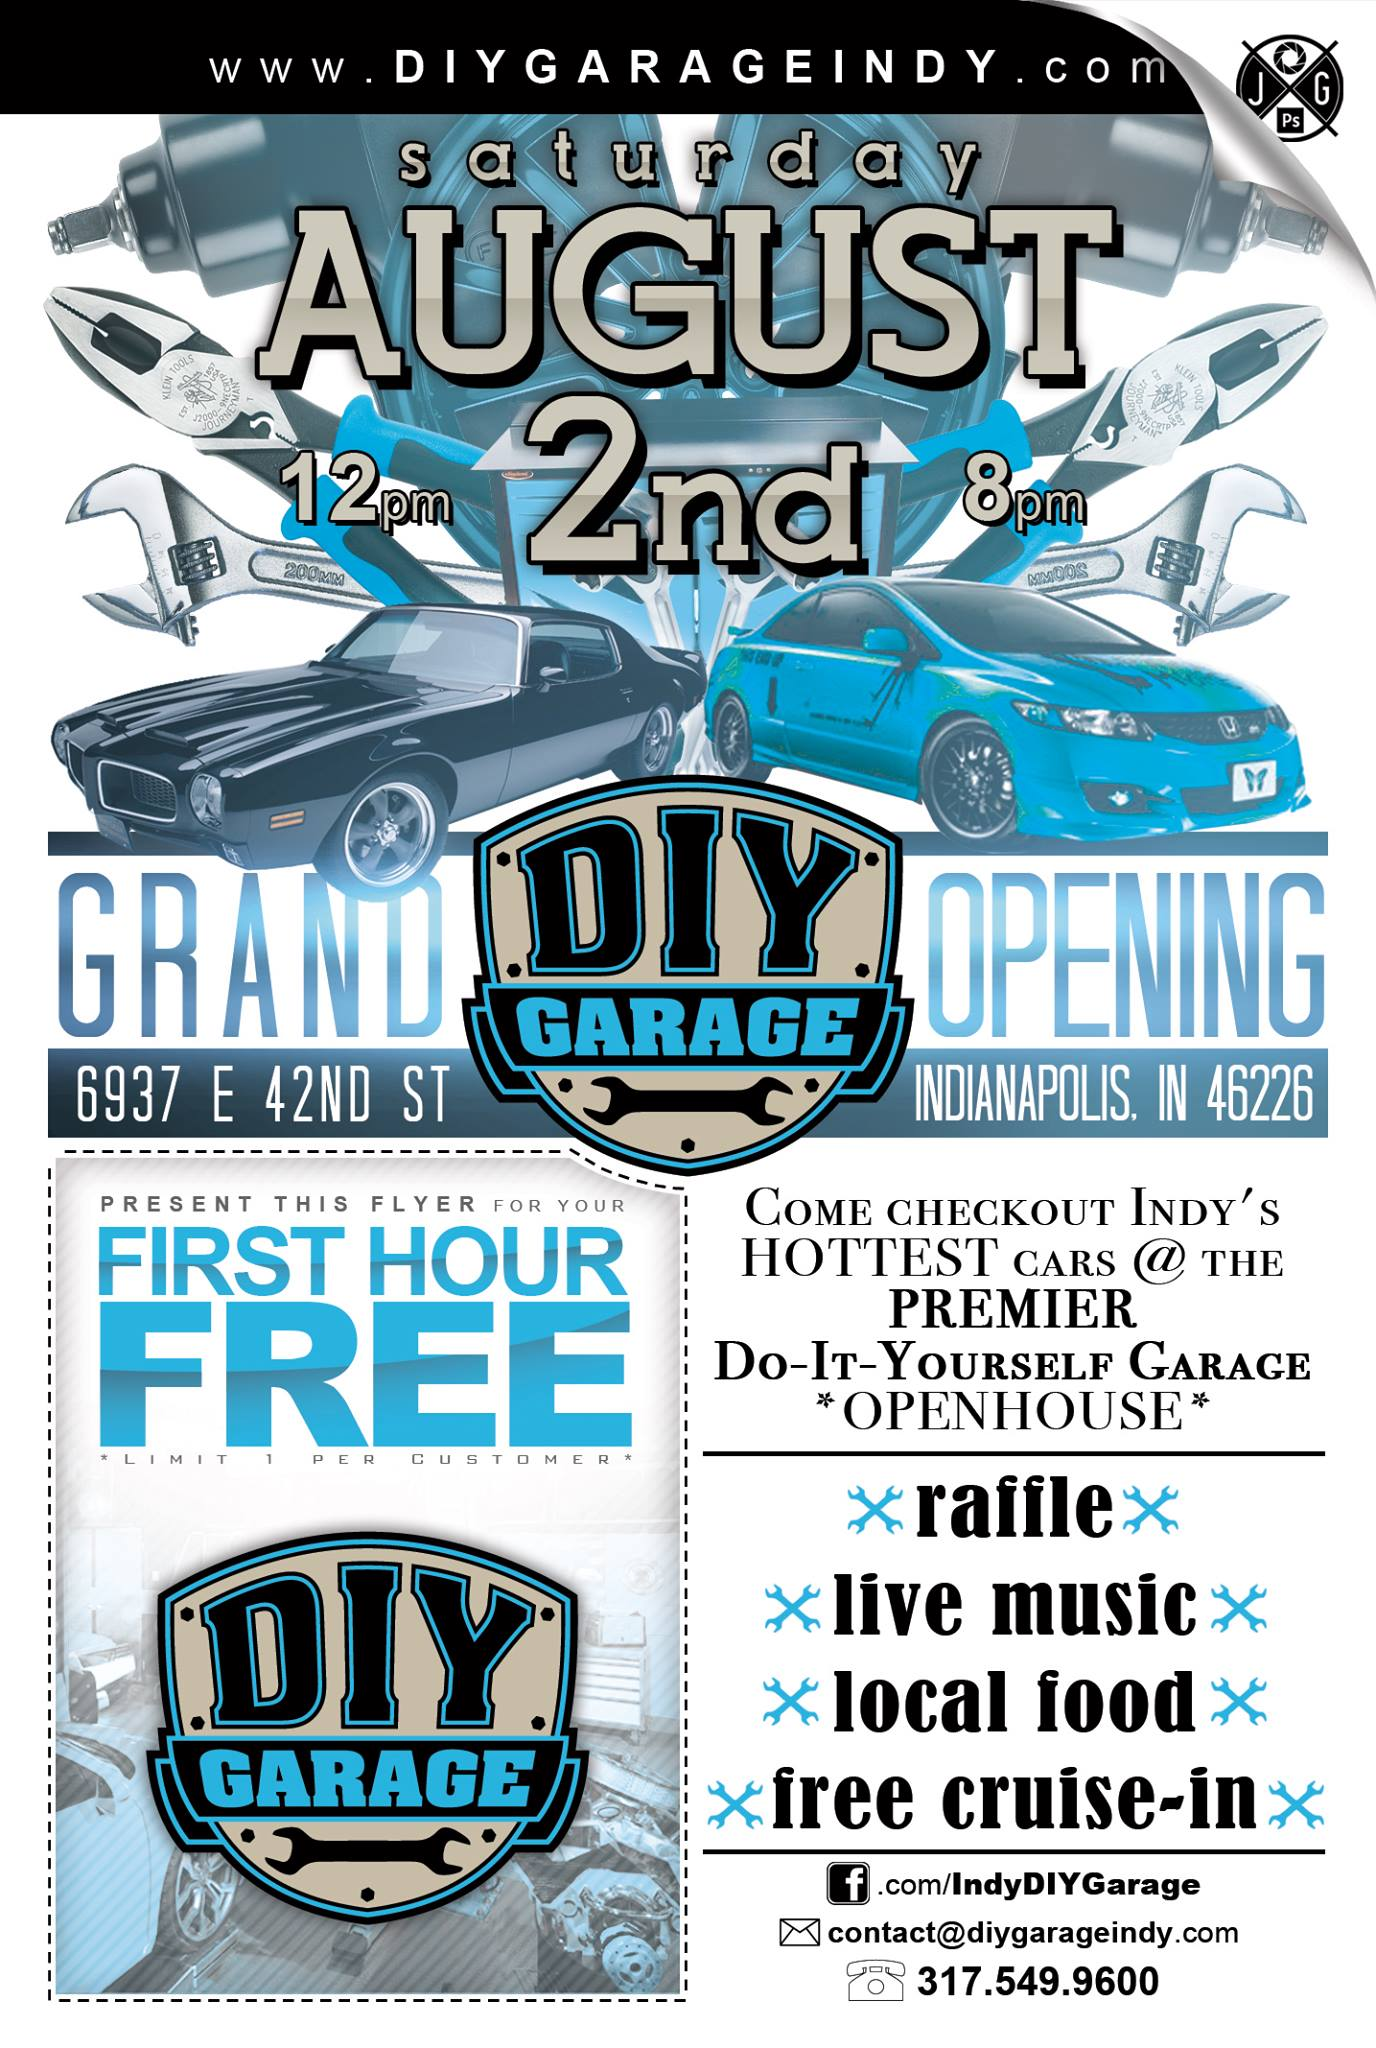 Indys diy garage grand opening titan lifts news diygarage you might be asking what is the diy garage solutioingenieria Choice Image